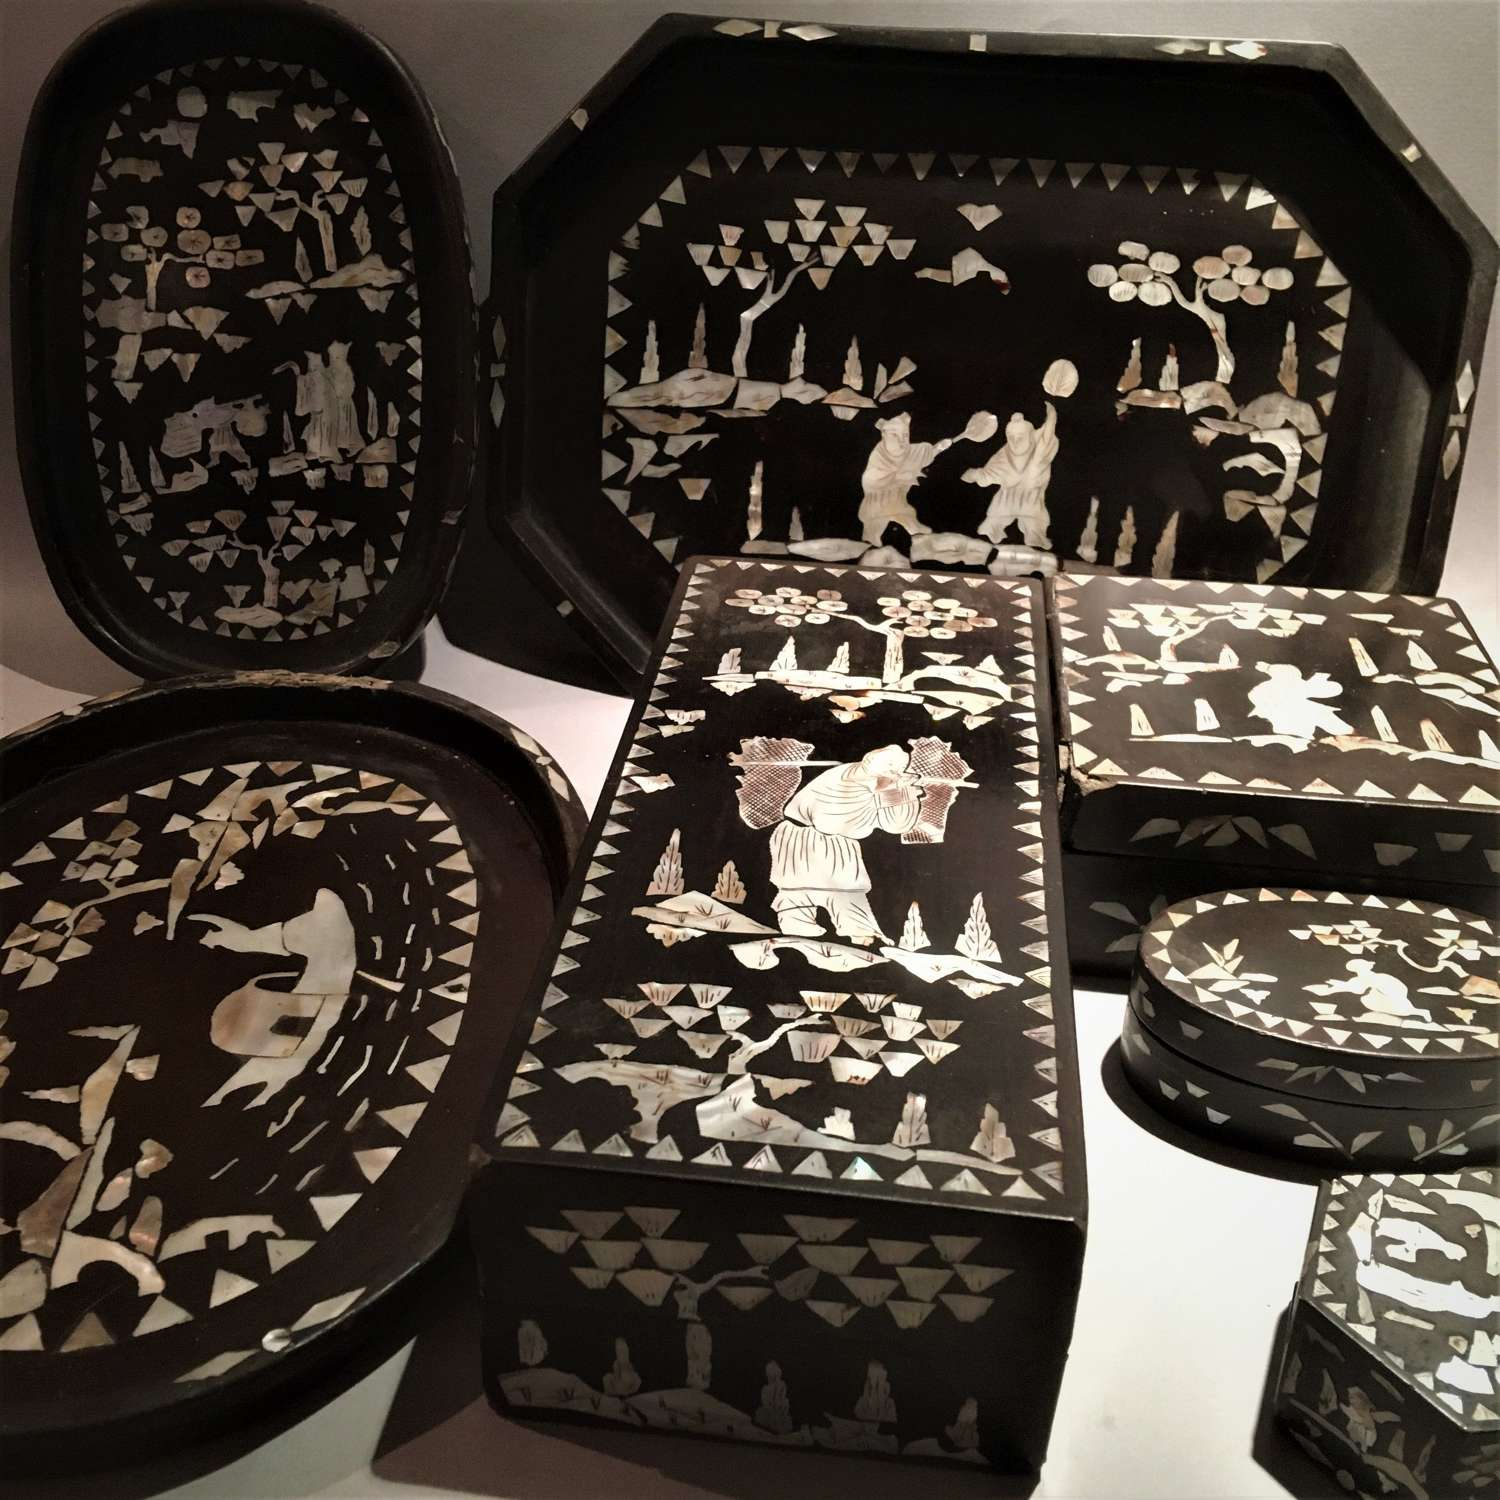 A quantity of antique Asian mother-of-pearl inlaid lacquer 螺細漆器 items